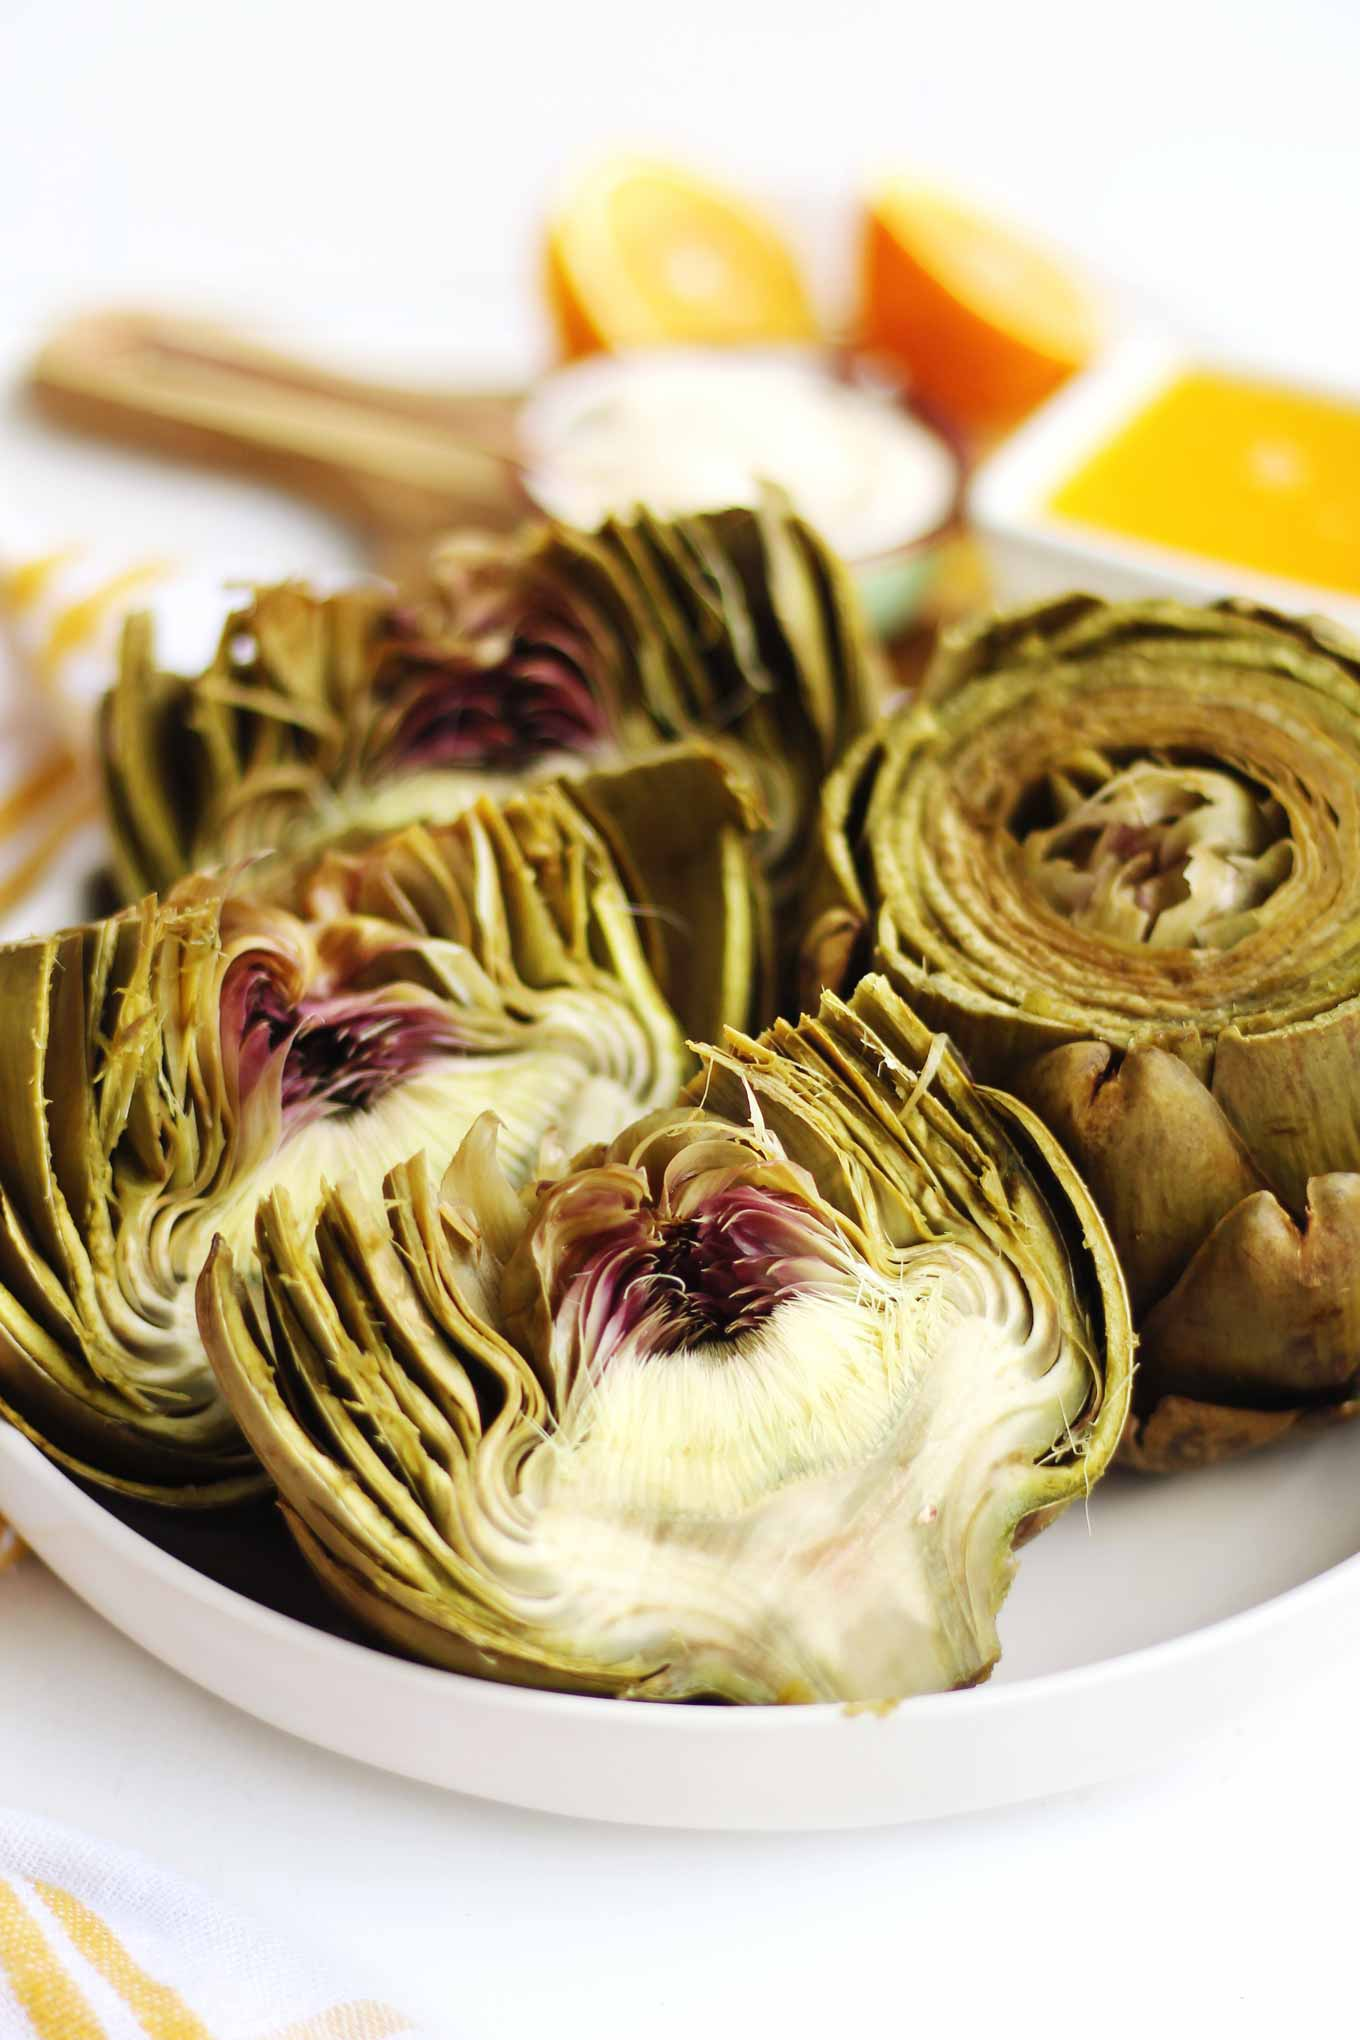 steamed artichokes cut in half